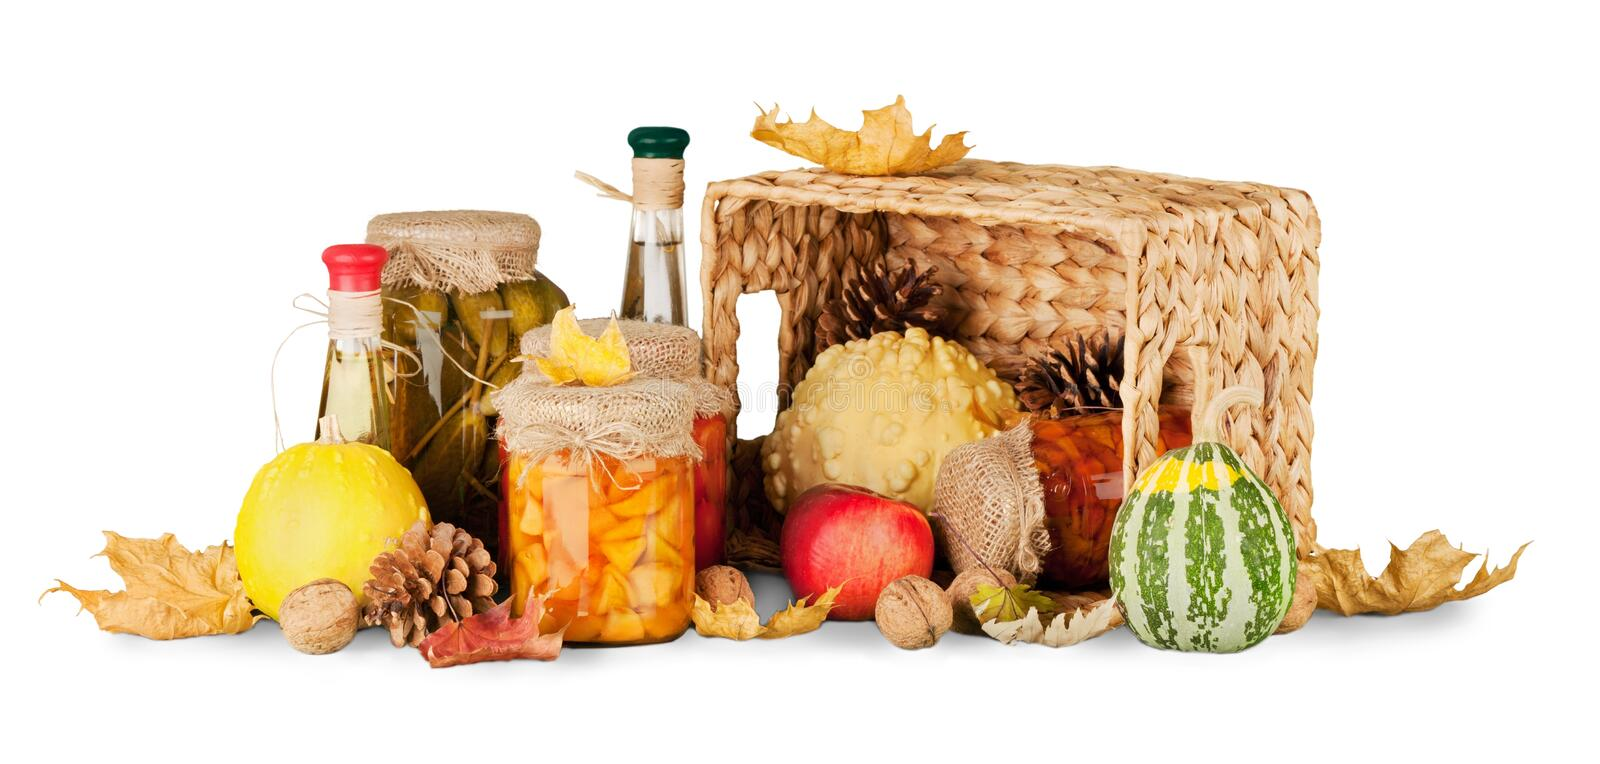 Harvest, season, advertisement and autumn concept royalty free stock photography